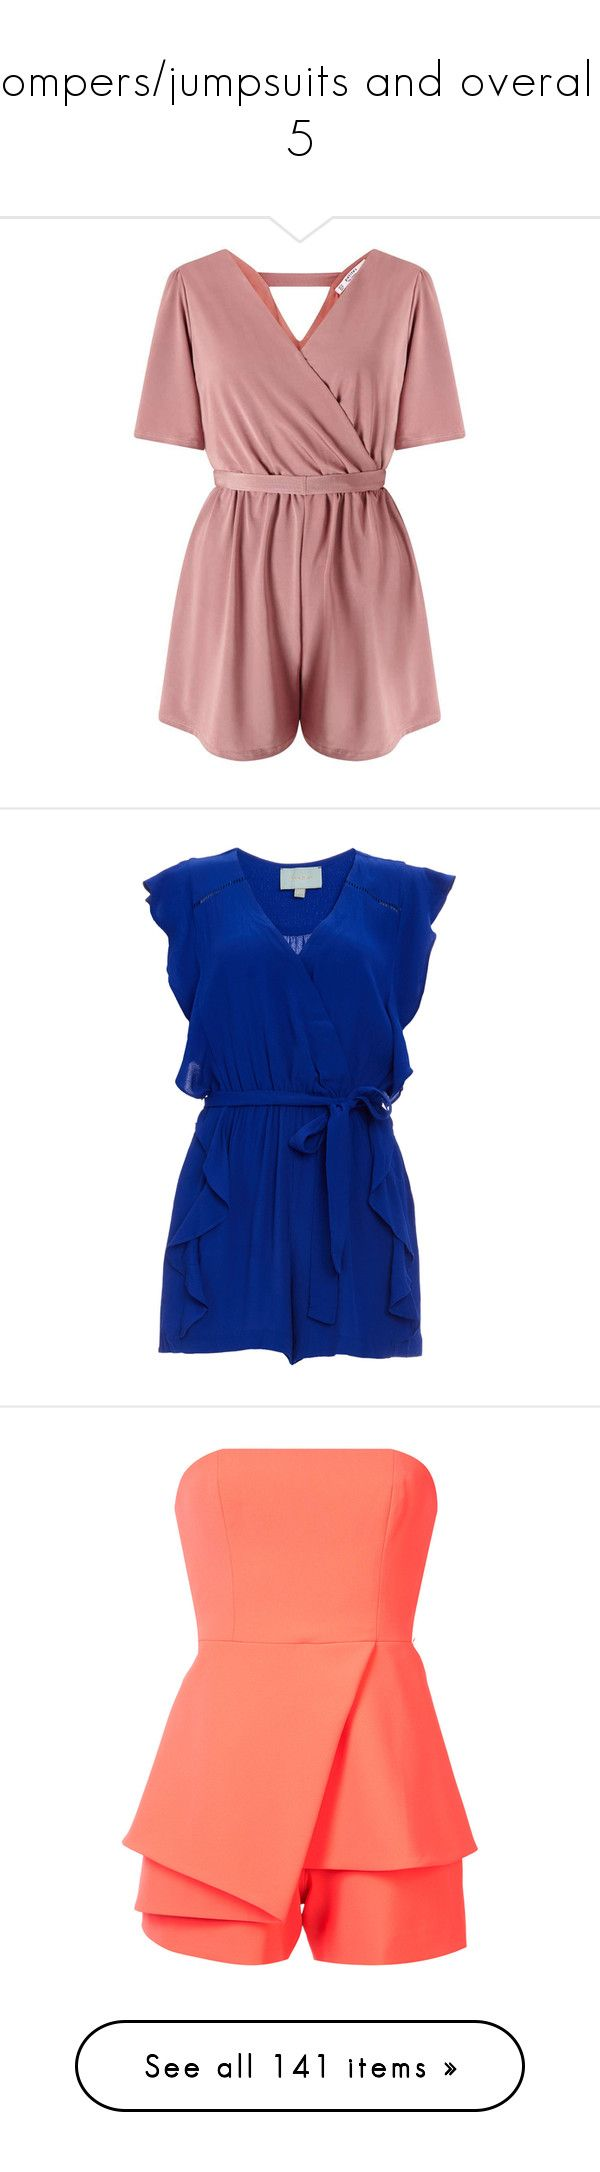 """""""Rompers/jumpsuits and overalls 5"""" by musicmelody1 on Polyvore featuring jumpsuits, rompers, dresses, playsuits, enterizos, jumper, mink, petite, red rompers and miss selfridge"""